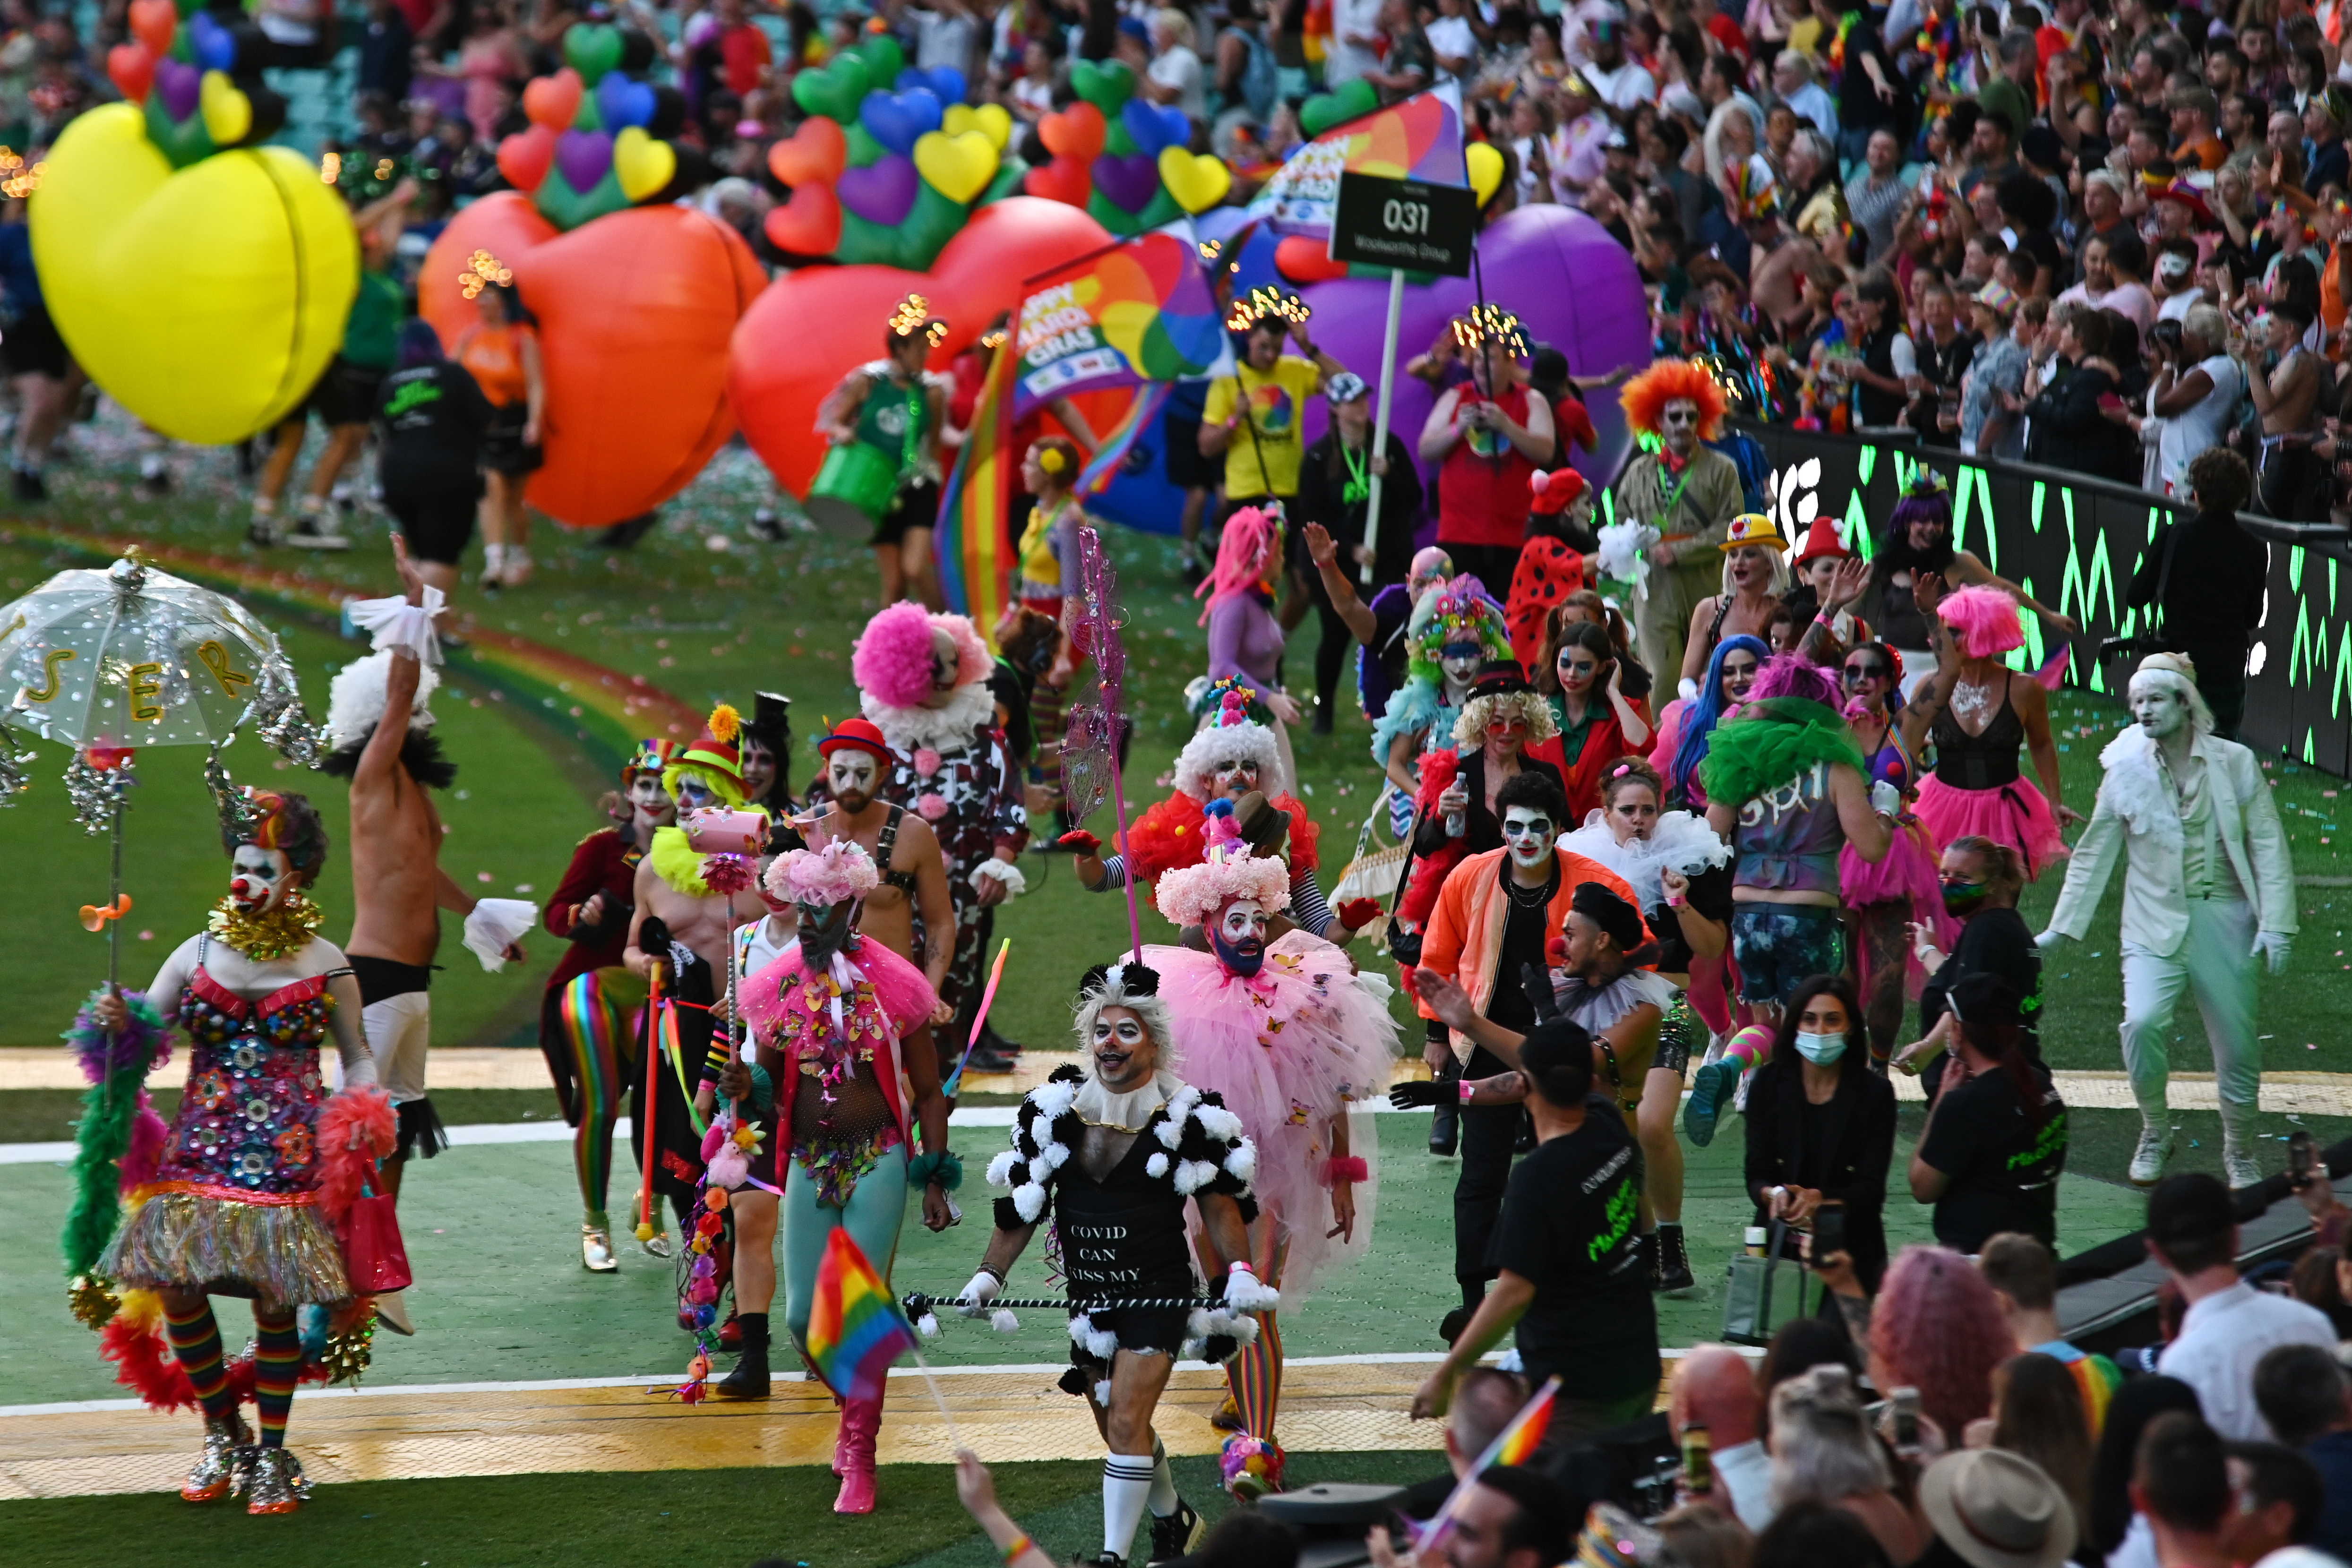 The 43rd Sydney Gay and Lesbian Mardi Gras Parade at the Sydney Cricket Ground (SCG) in Sydney. 6th March 2021